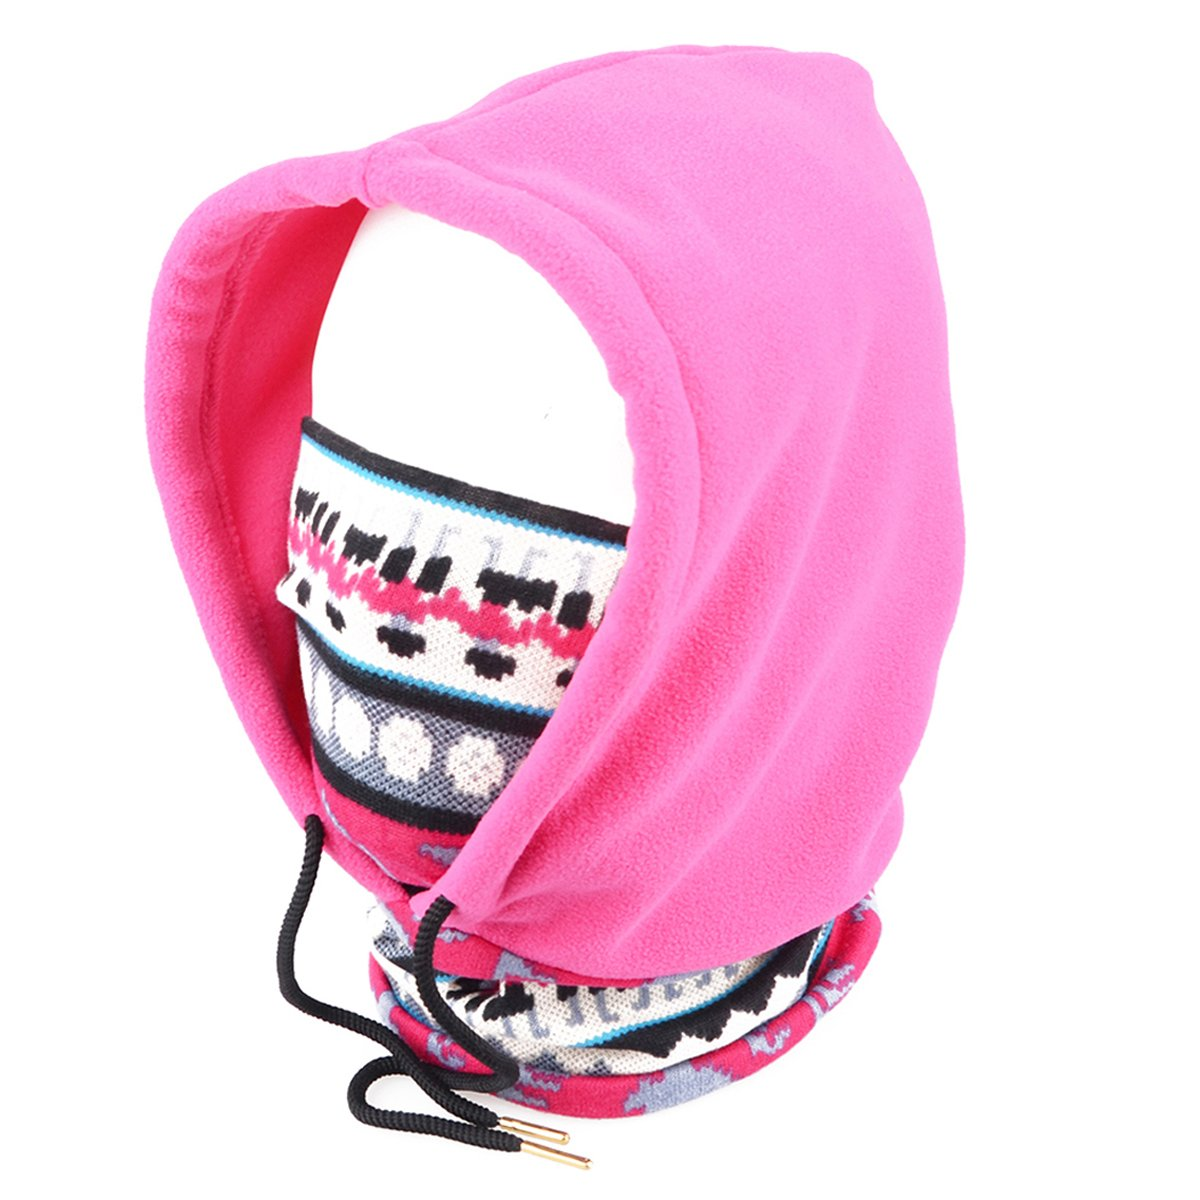 Triwonder 250g Fleece Full Face Cap Hat Neck Warmer Face Mask Balaclava Hat OS0702GY